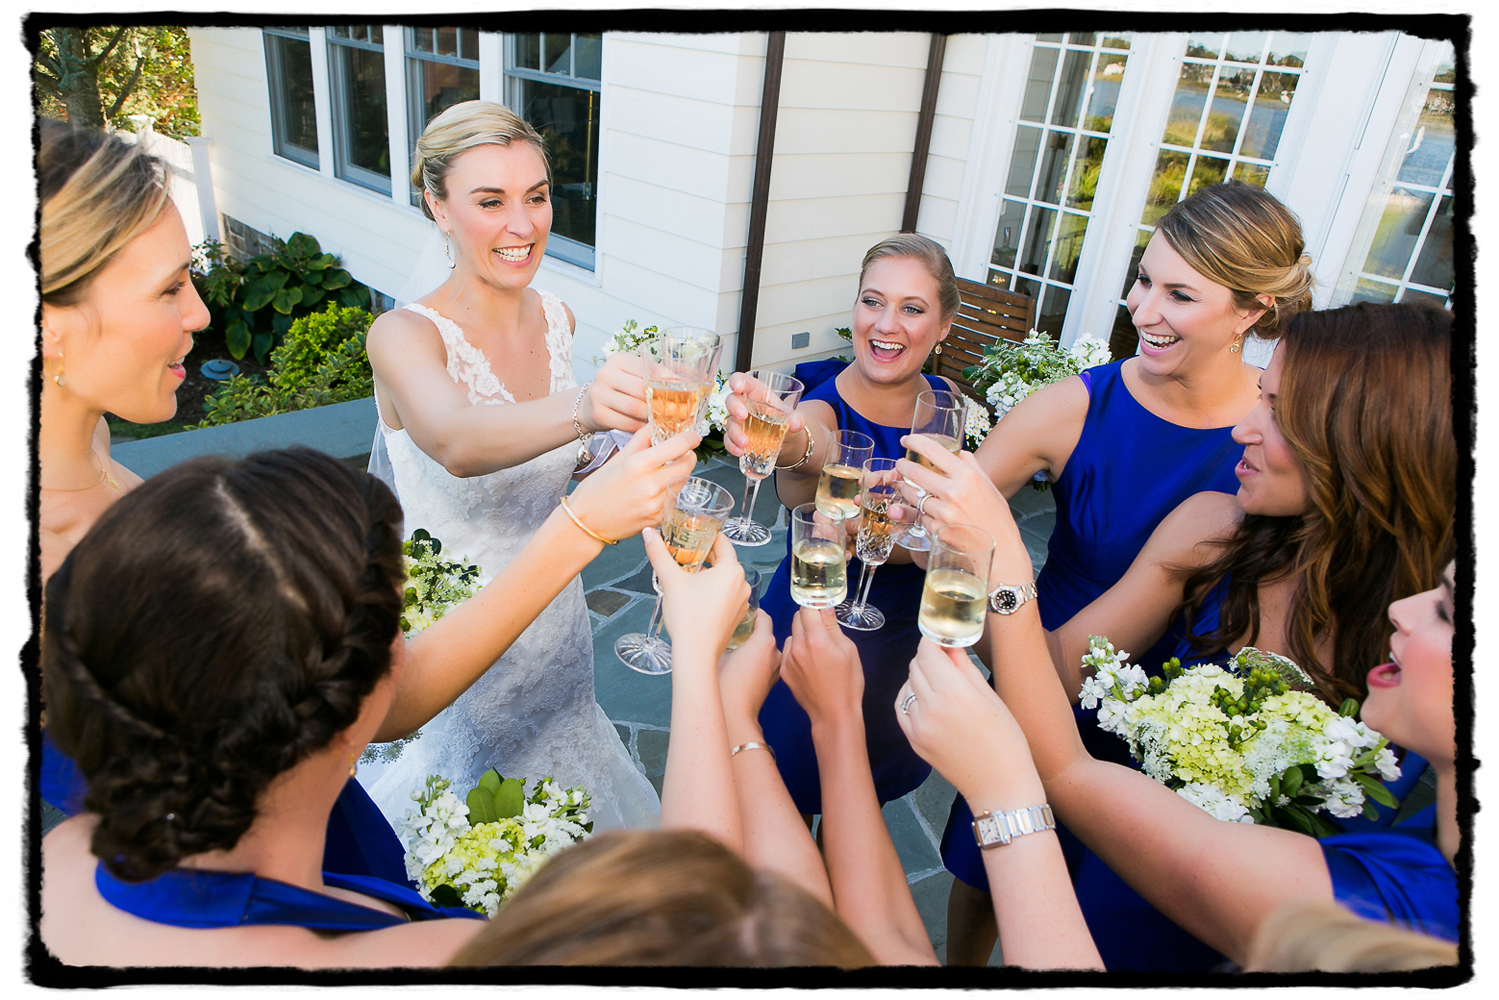 Carrie and her bridesmaids share a toast on her parents' back deck before heading to the wedding at Belle Haven Club in Greenwich, CT.